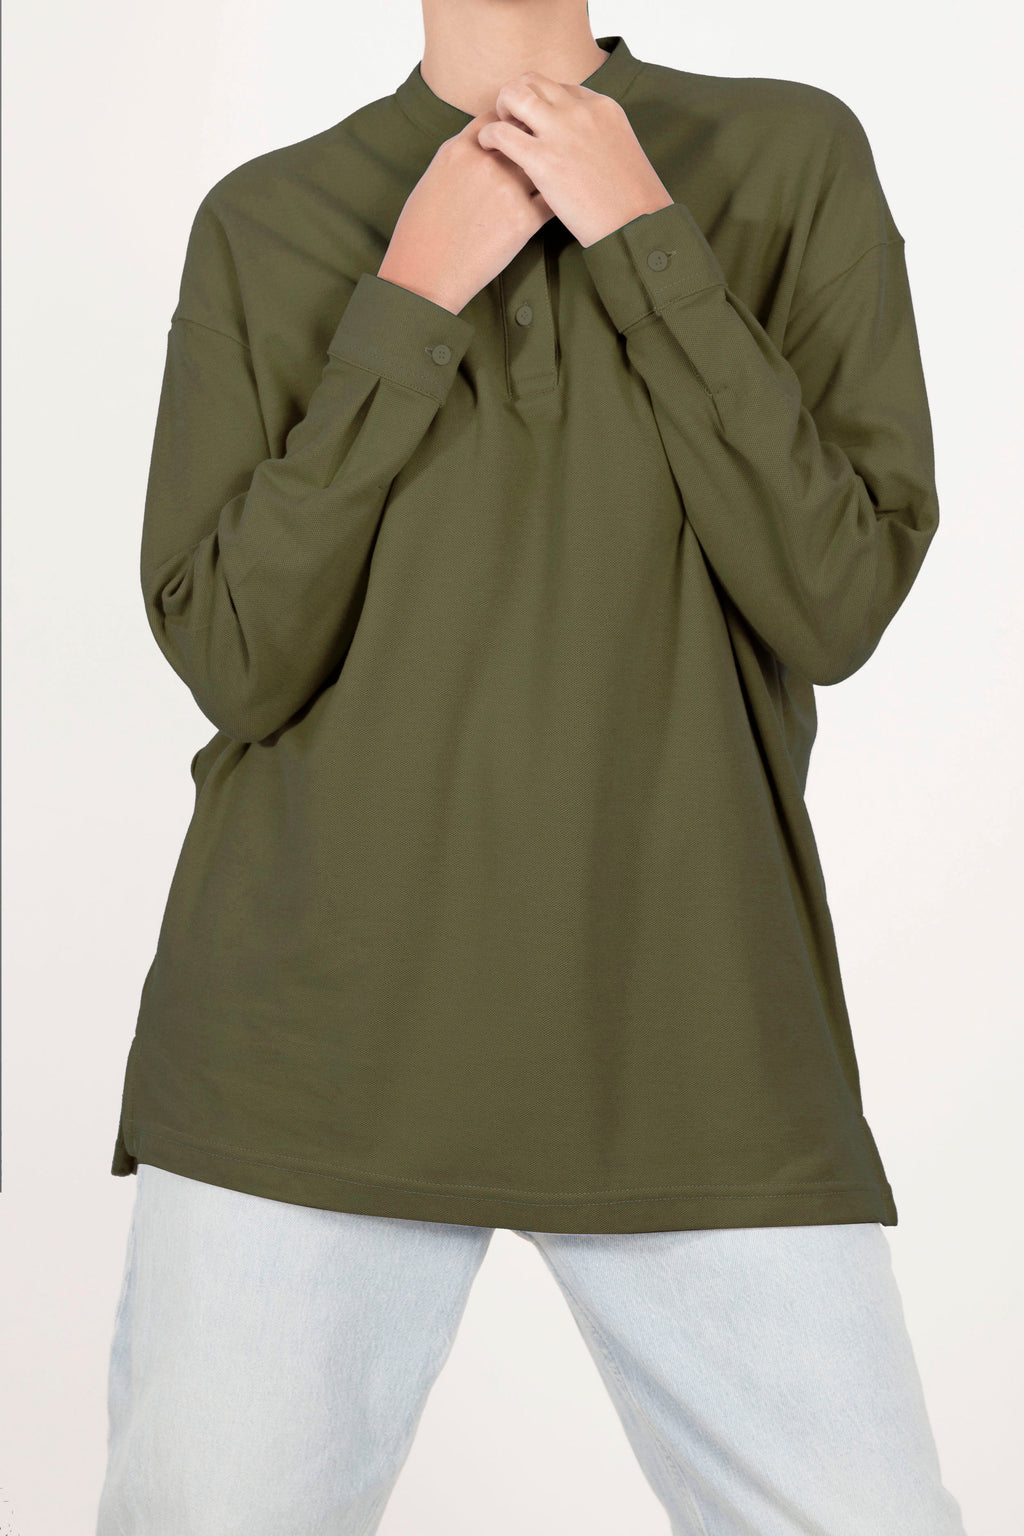 Oversized Polo Shirt - Olive